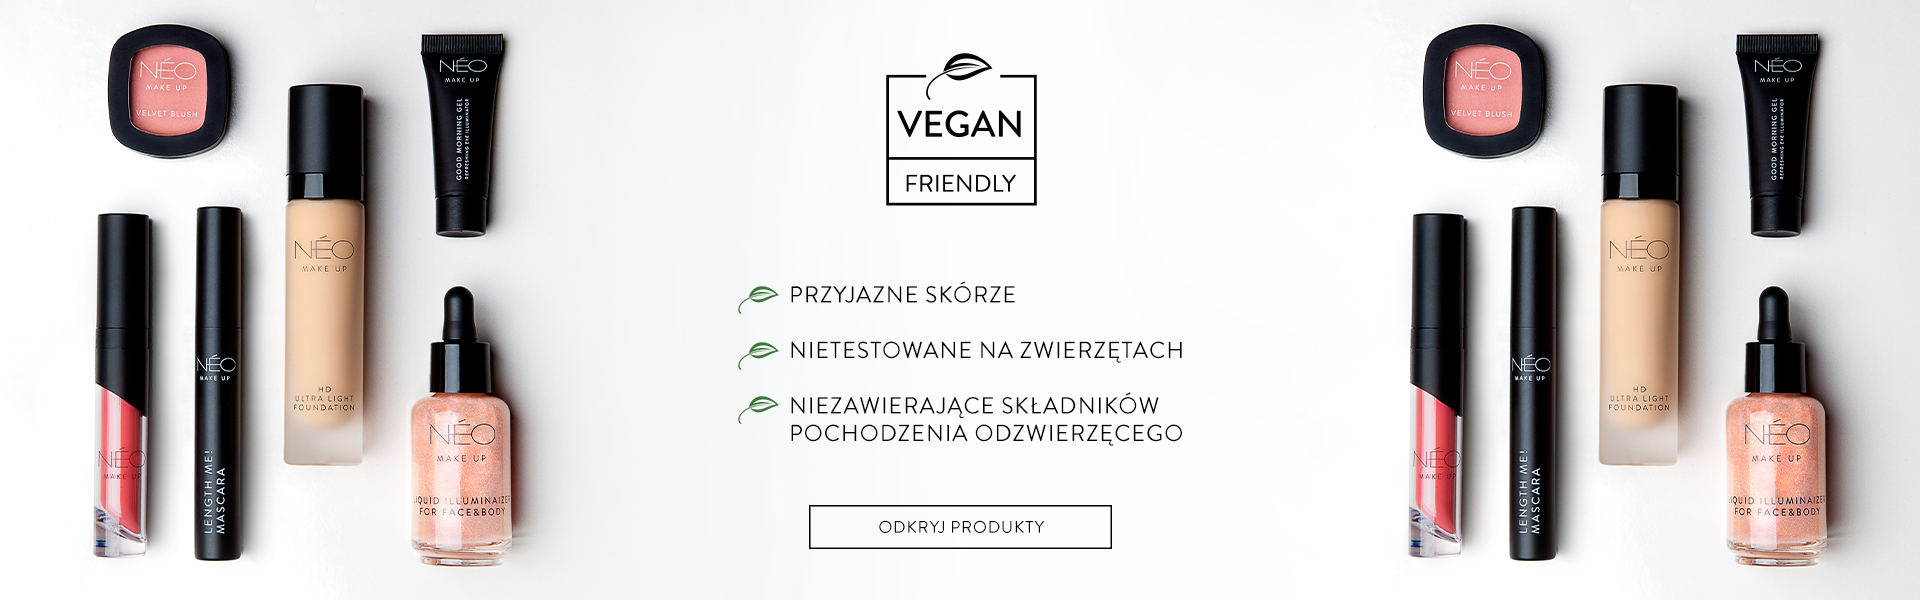 Kosmetyki Vegan friendly NEO Make Up